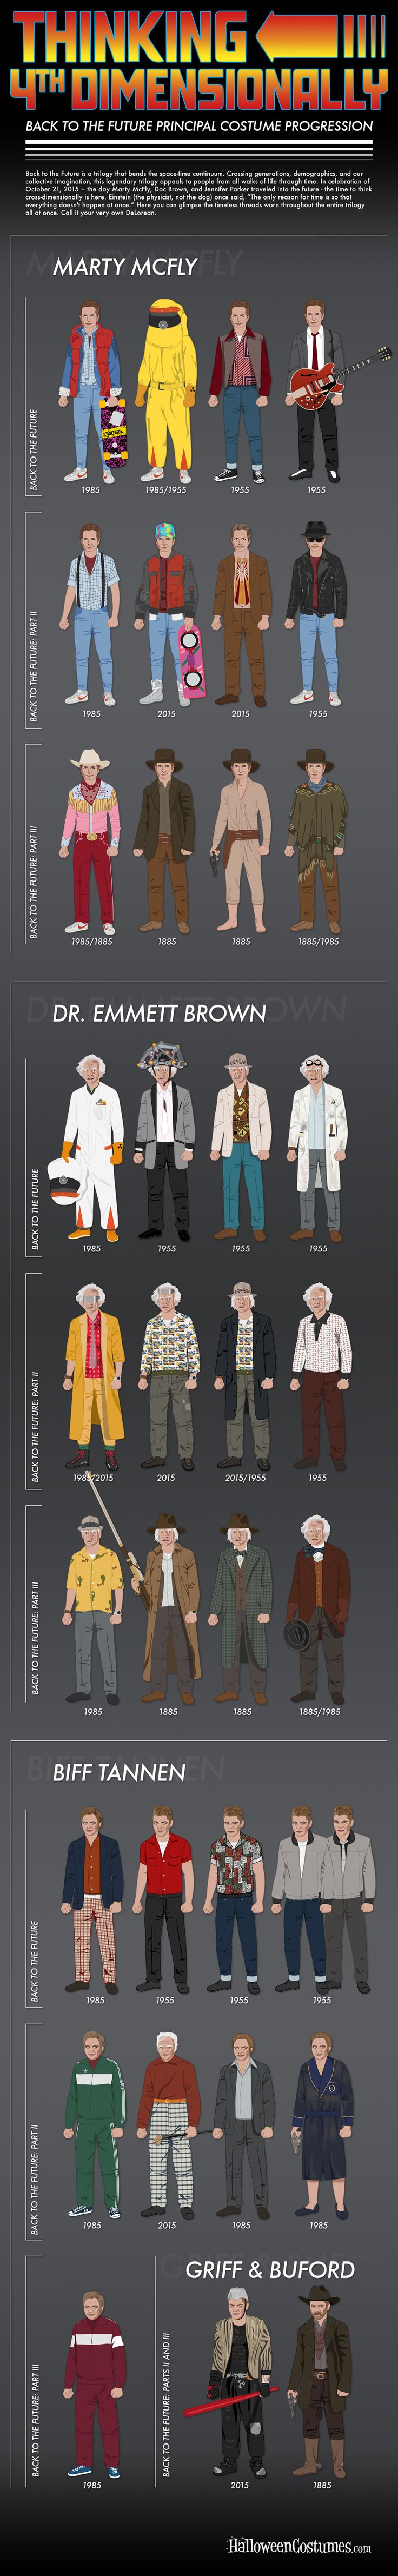 best 25 marty mcfly ideas on pinterest marty mcfly costume